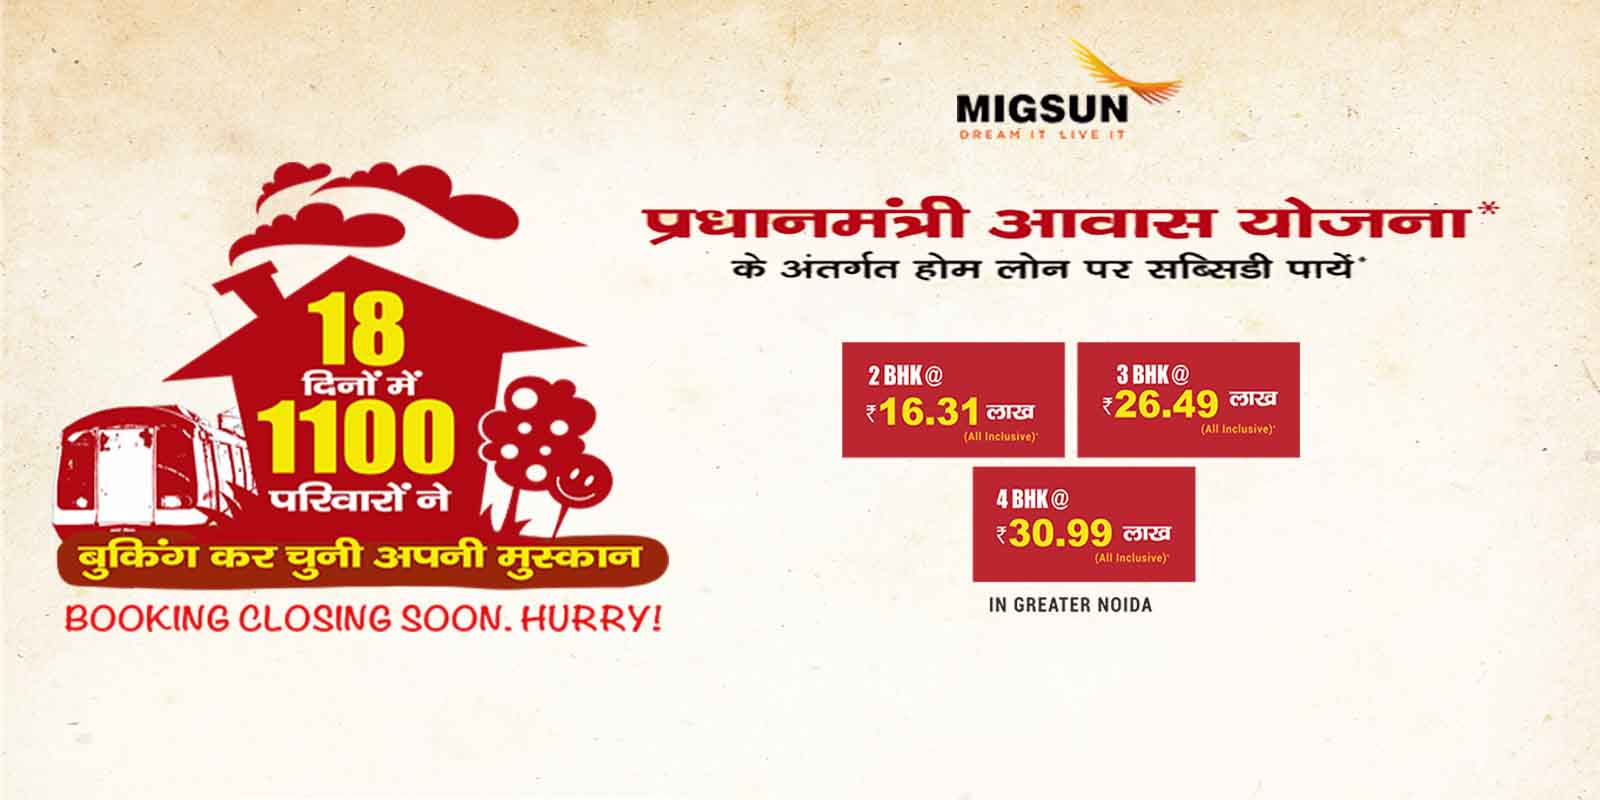 Migsun Vilaasa 2,3 BHK for booking call us: +919210333666